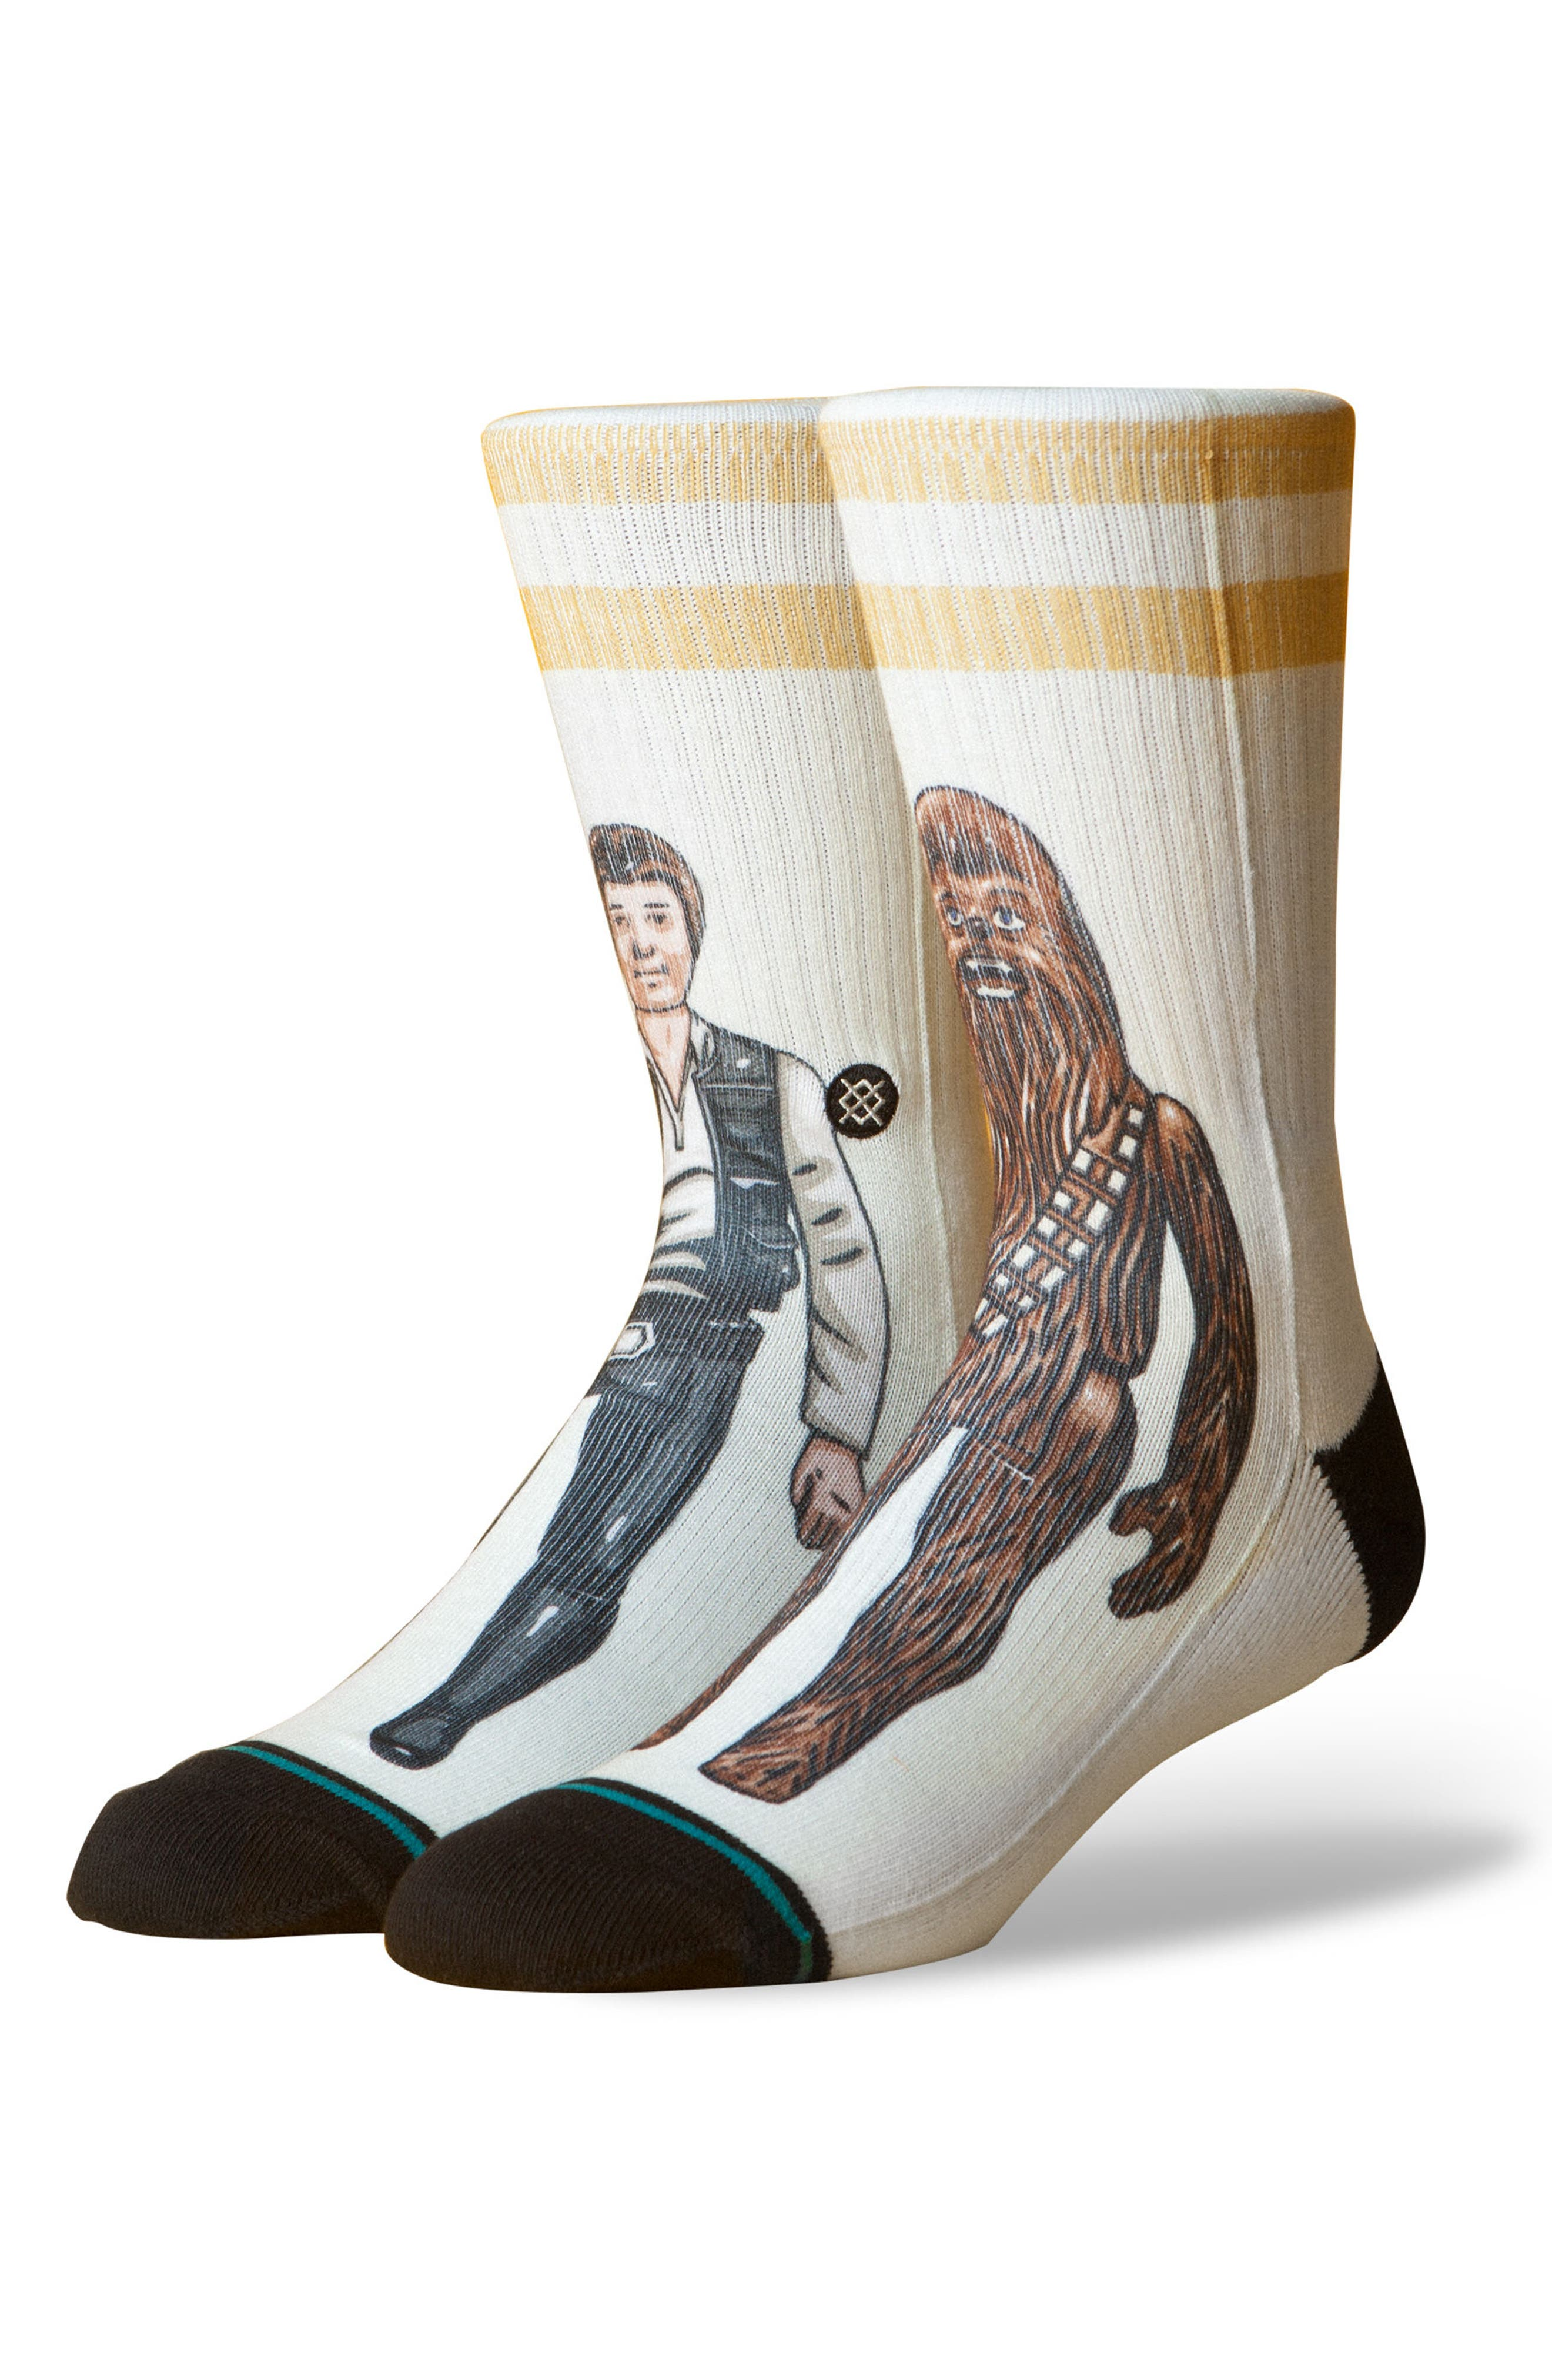 Star Wars<sup>™</sup> Smuggler Trade Socks,                             Main thumbnail 1, color,                             900